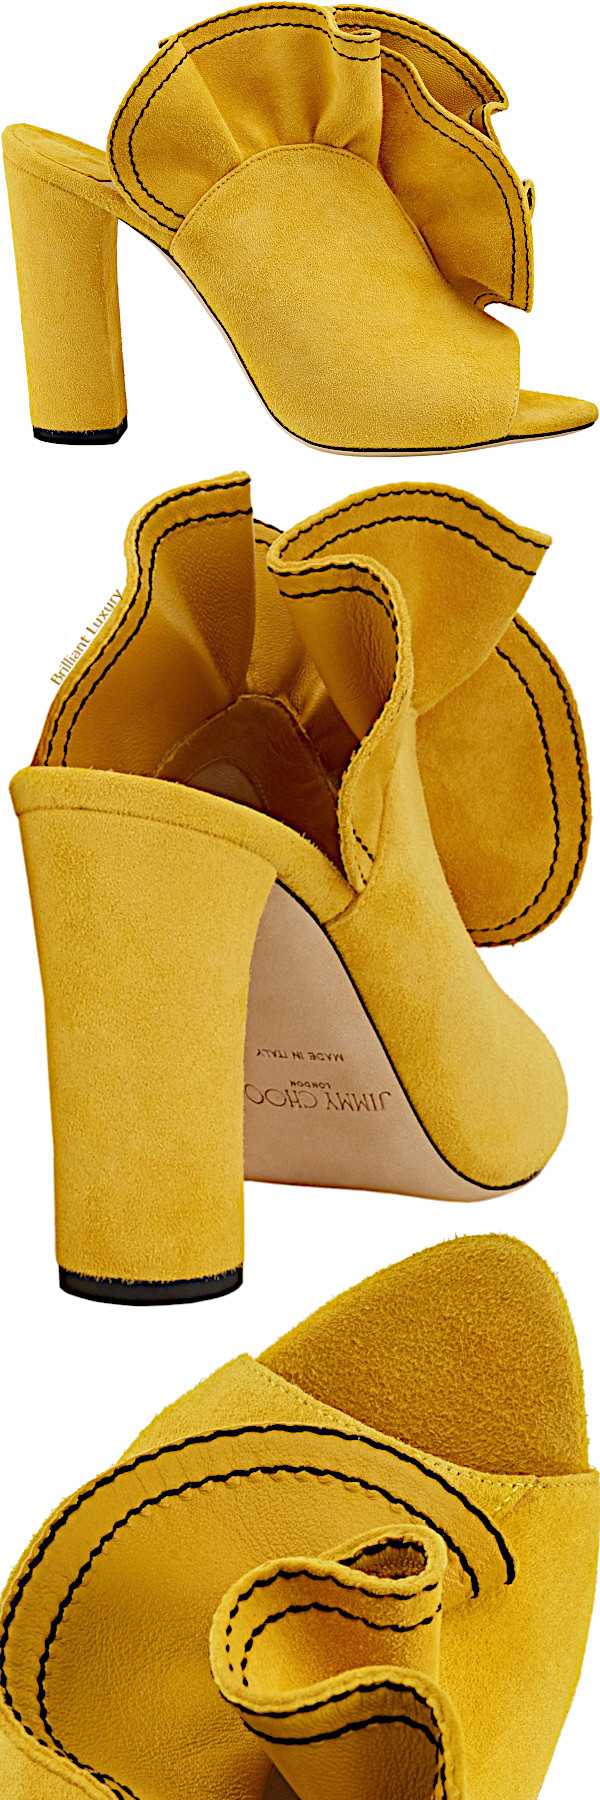 Jimmy Choo Haile suede open toe mules in yellow